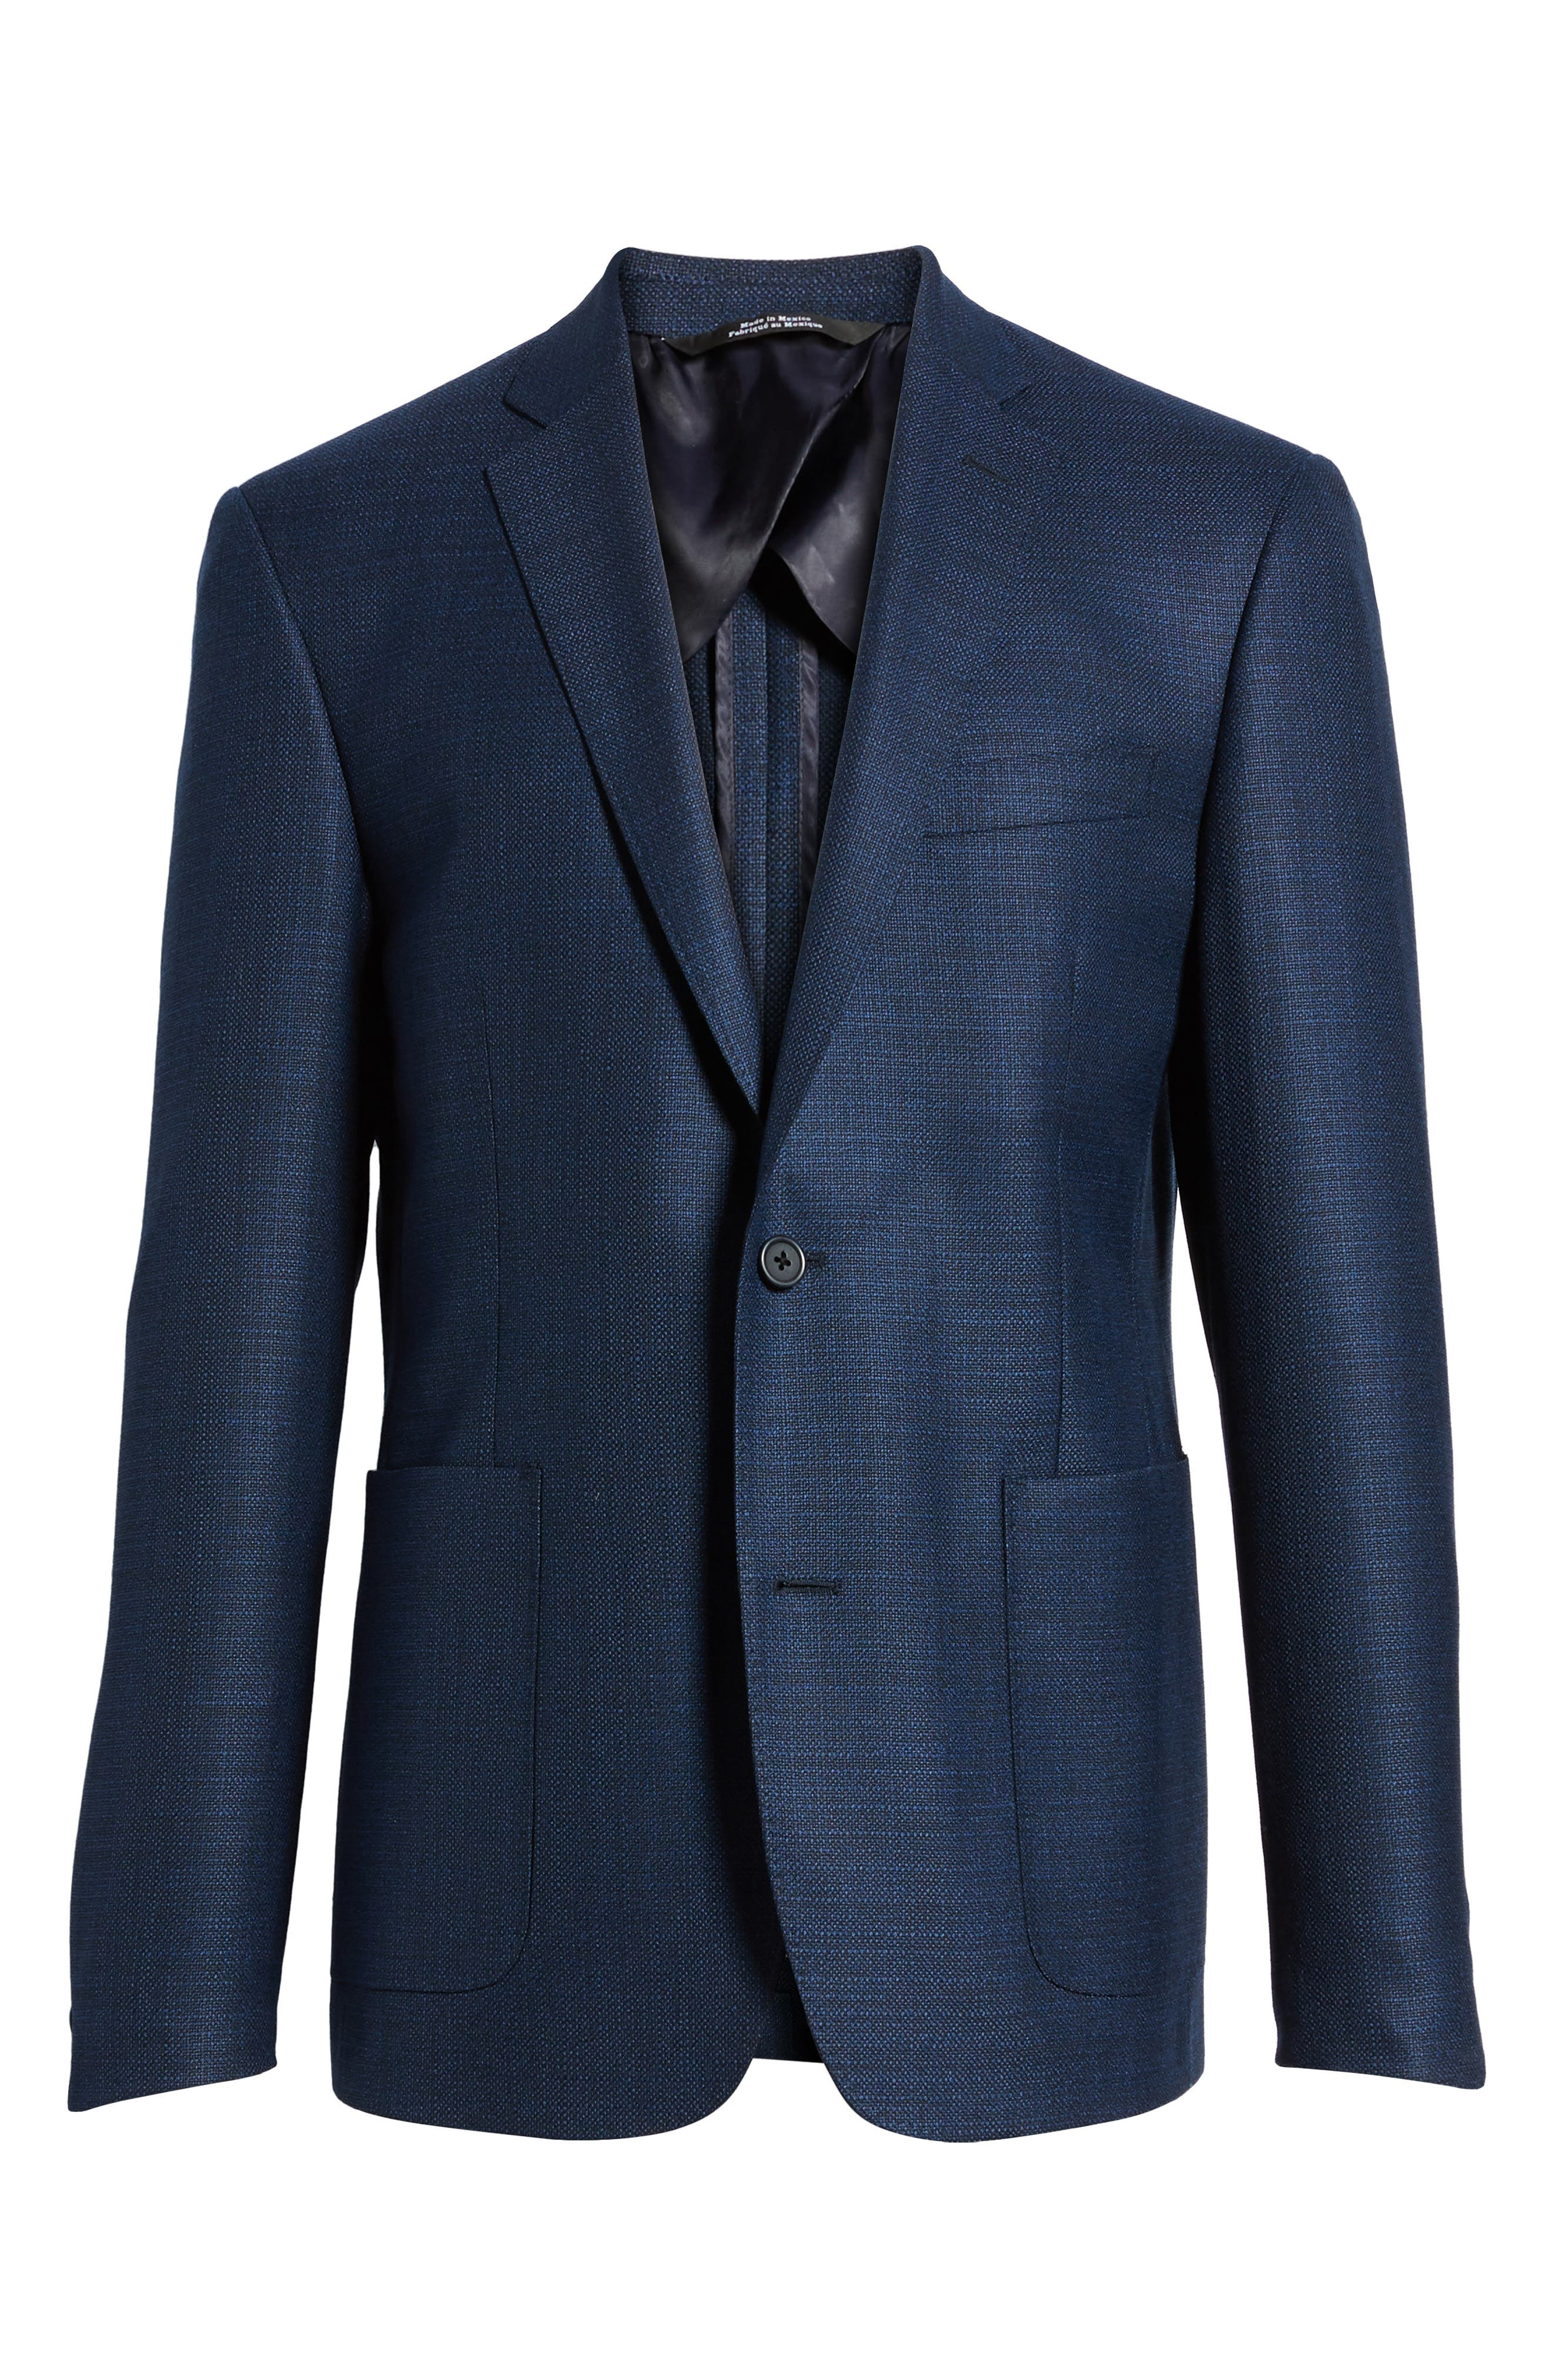 Trim Fit Wool Blazer,                             Alternate thumbnail 6, color,                             Navy